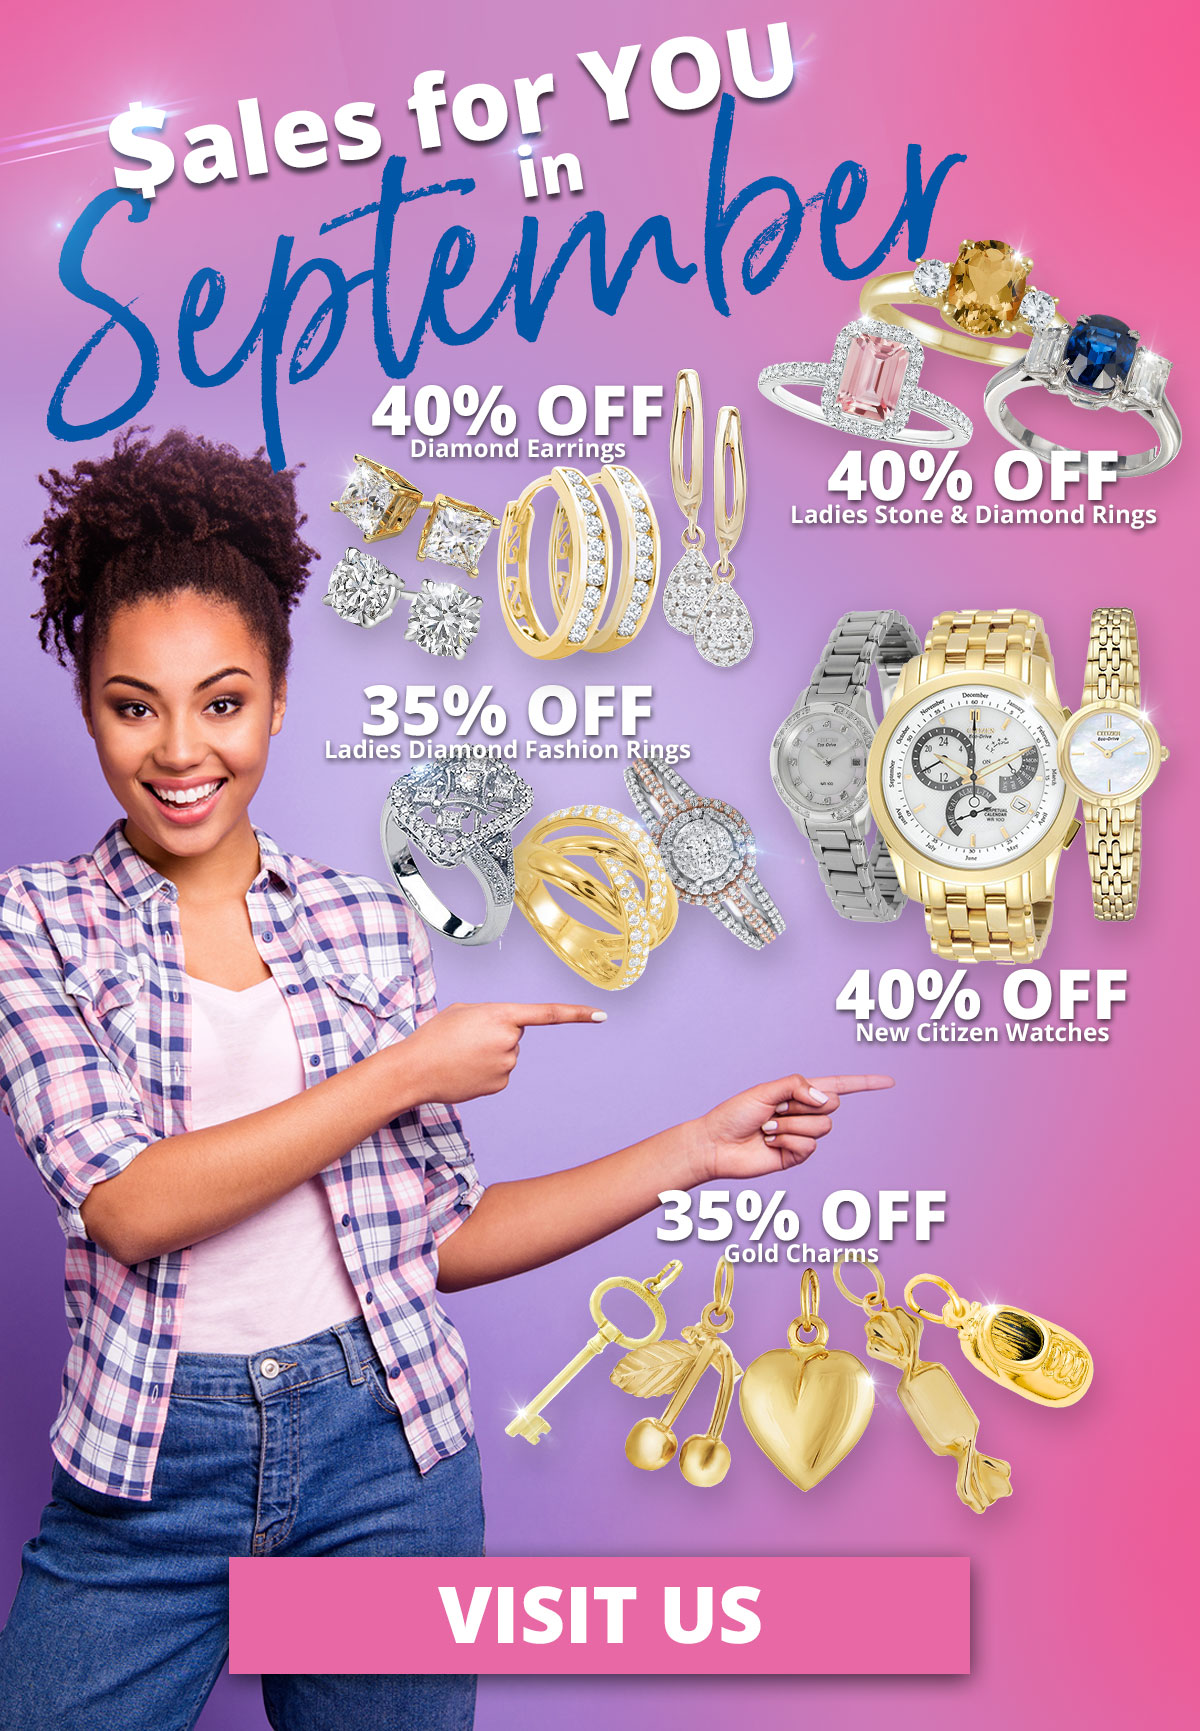 $ales for YOU in September 40% OFF Diamond Earrings 40% OFF Ladies Stone & Diamond Rings 35% OFF Ladies Diamond Fashion Rings 40% OFF New Citizen Watches 35% OFF Gold Charms Sale Runs September 1 - 30, 2021. Layaway discounts must be reduced by 12.5%. Offer cannot be combined with any other offer. Discount not available on previously sold merchandise. Excludes all 3rd party appraised/certified jewelry. Rolex, gold and other high end watches excluded.